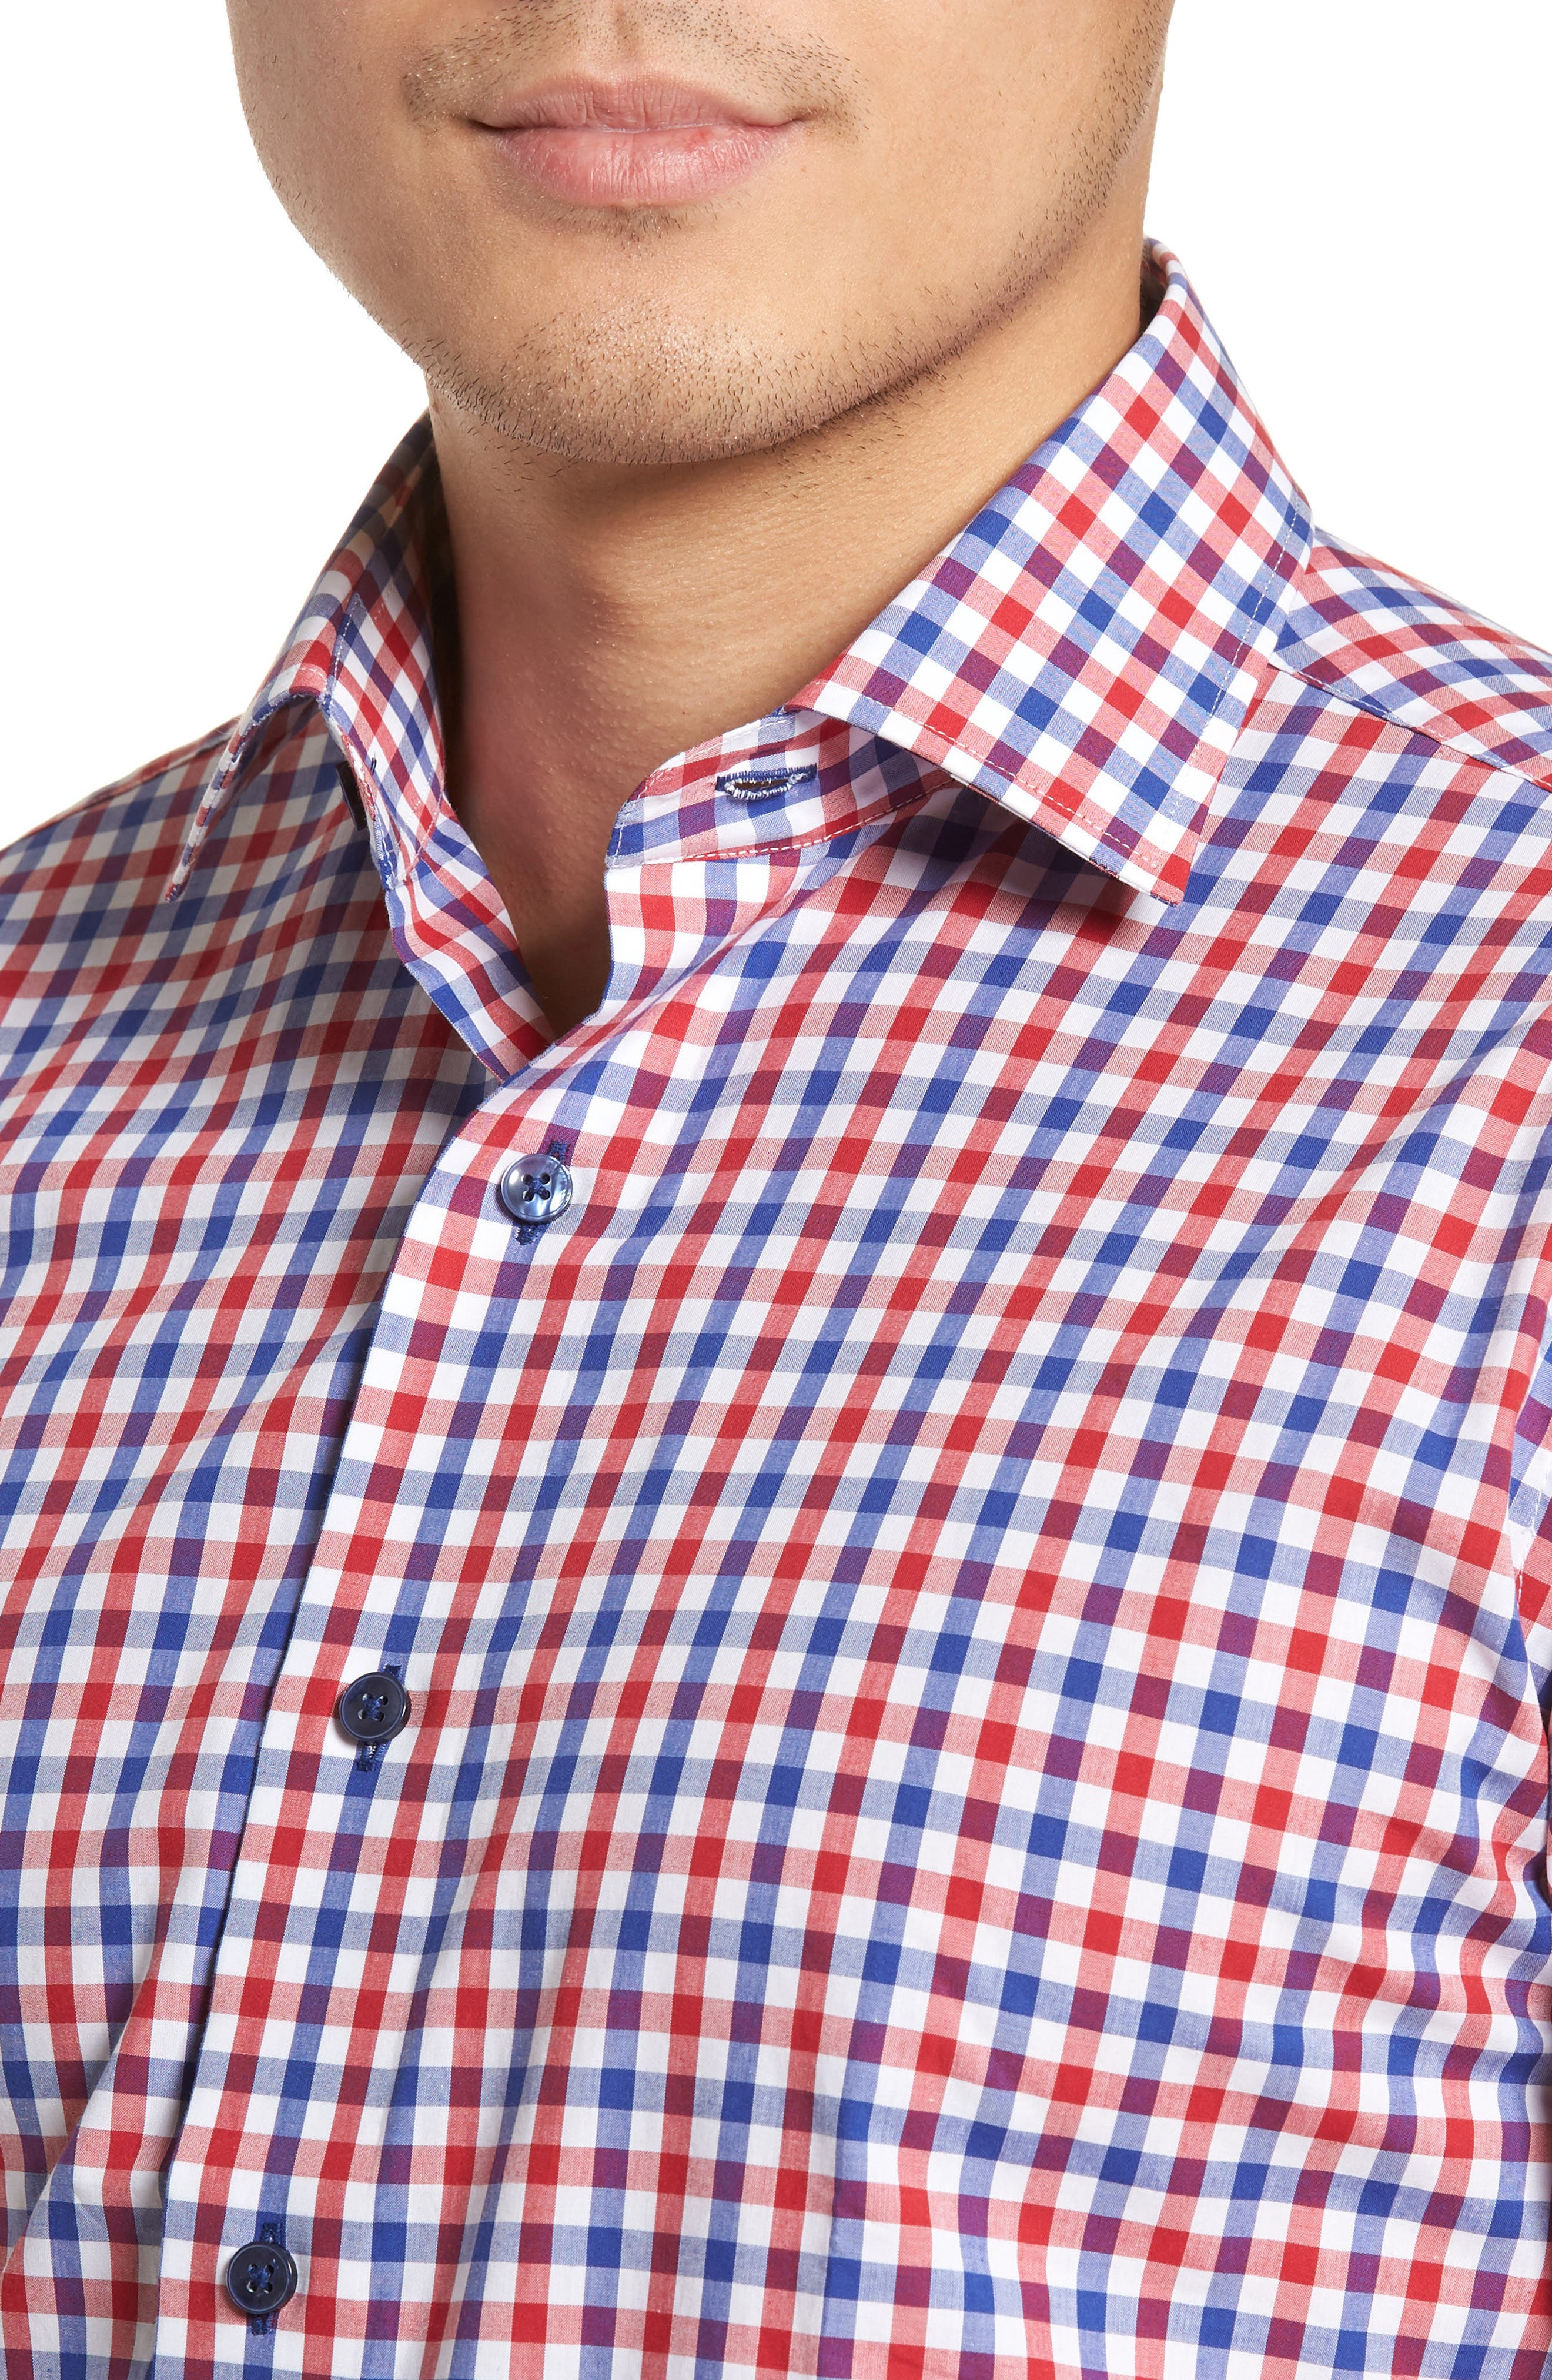 Trim Fit Check Dress Shirt,                             Alternate thumbnail 2, color,                             NAVY/ RED